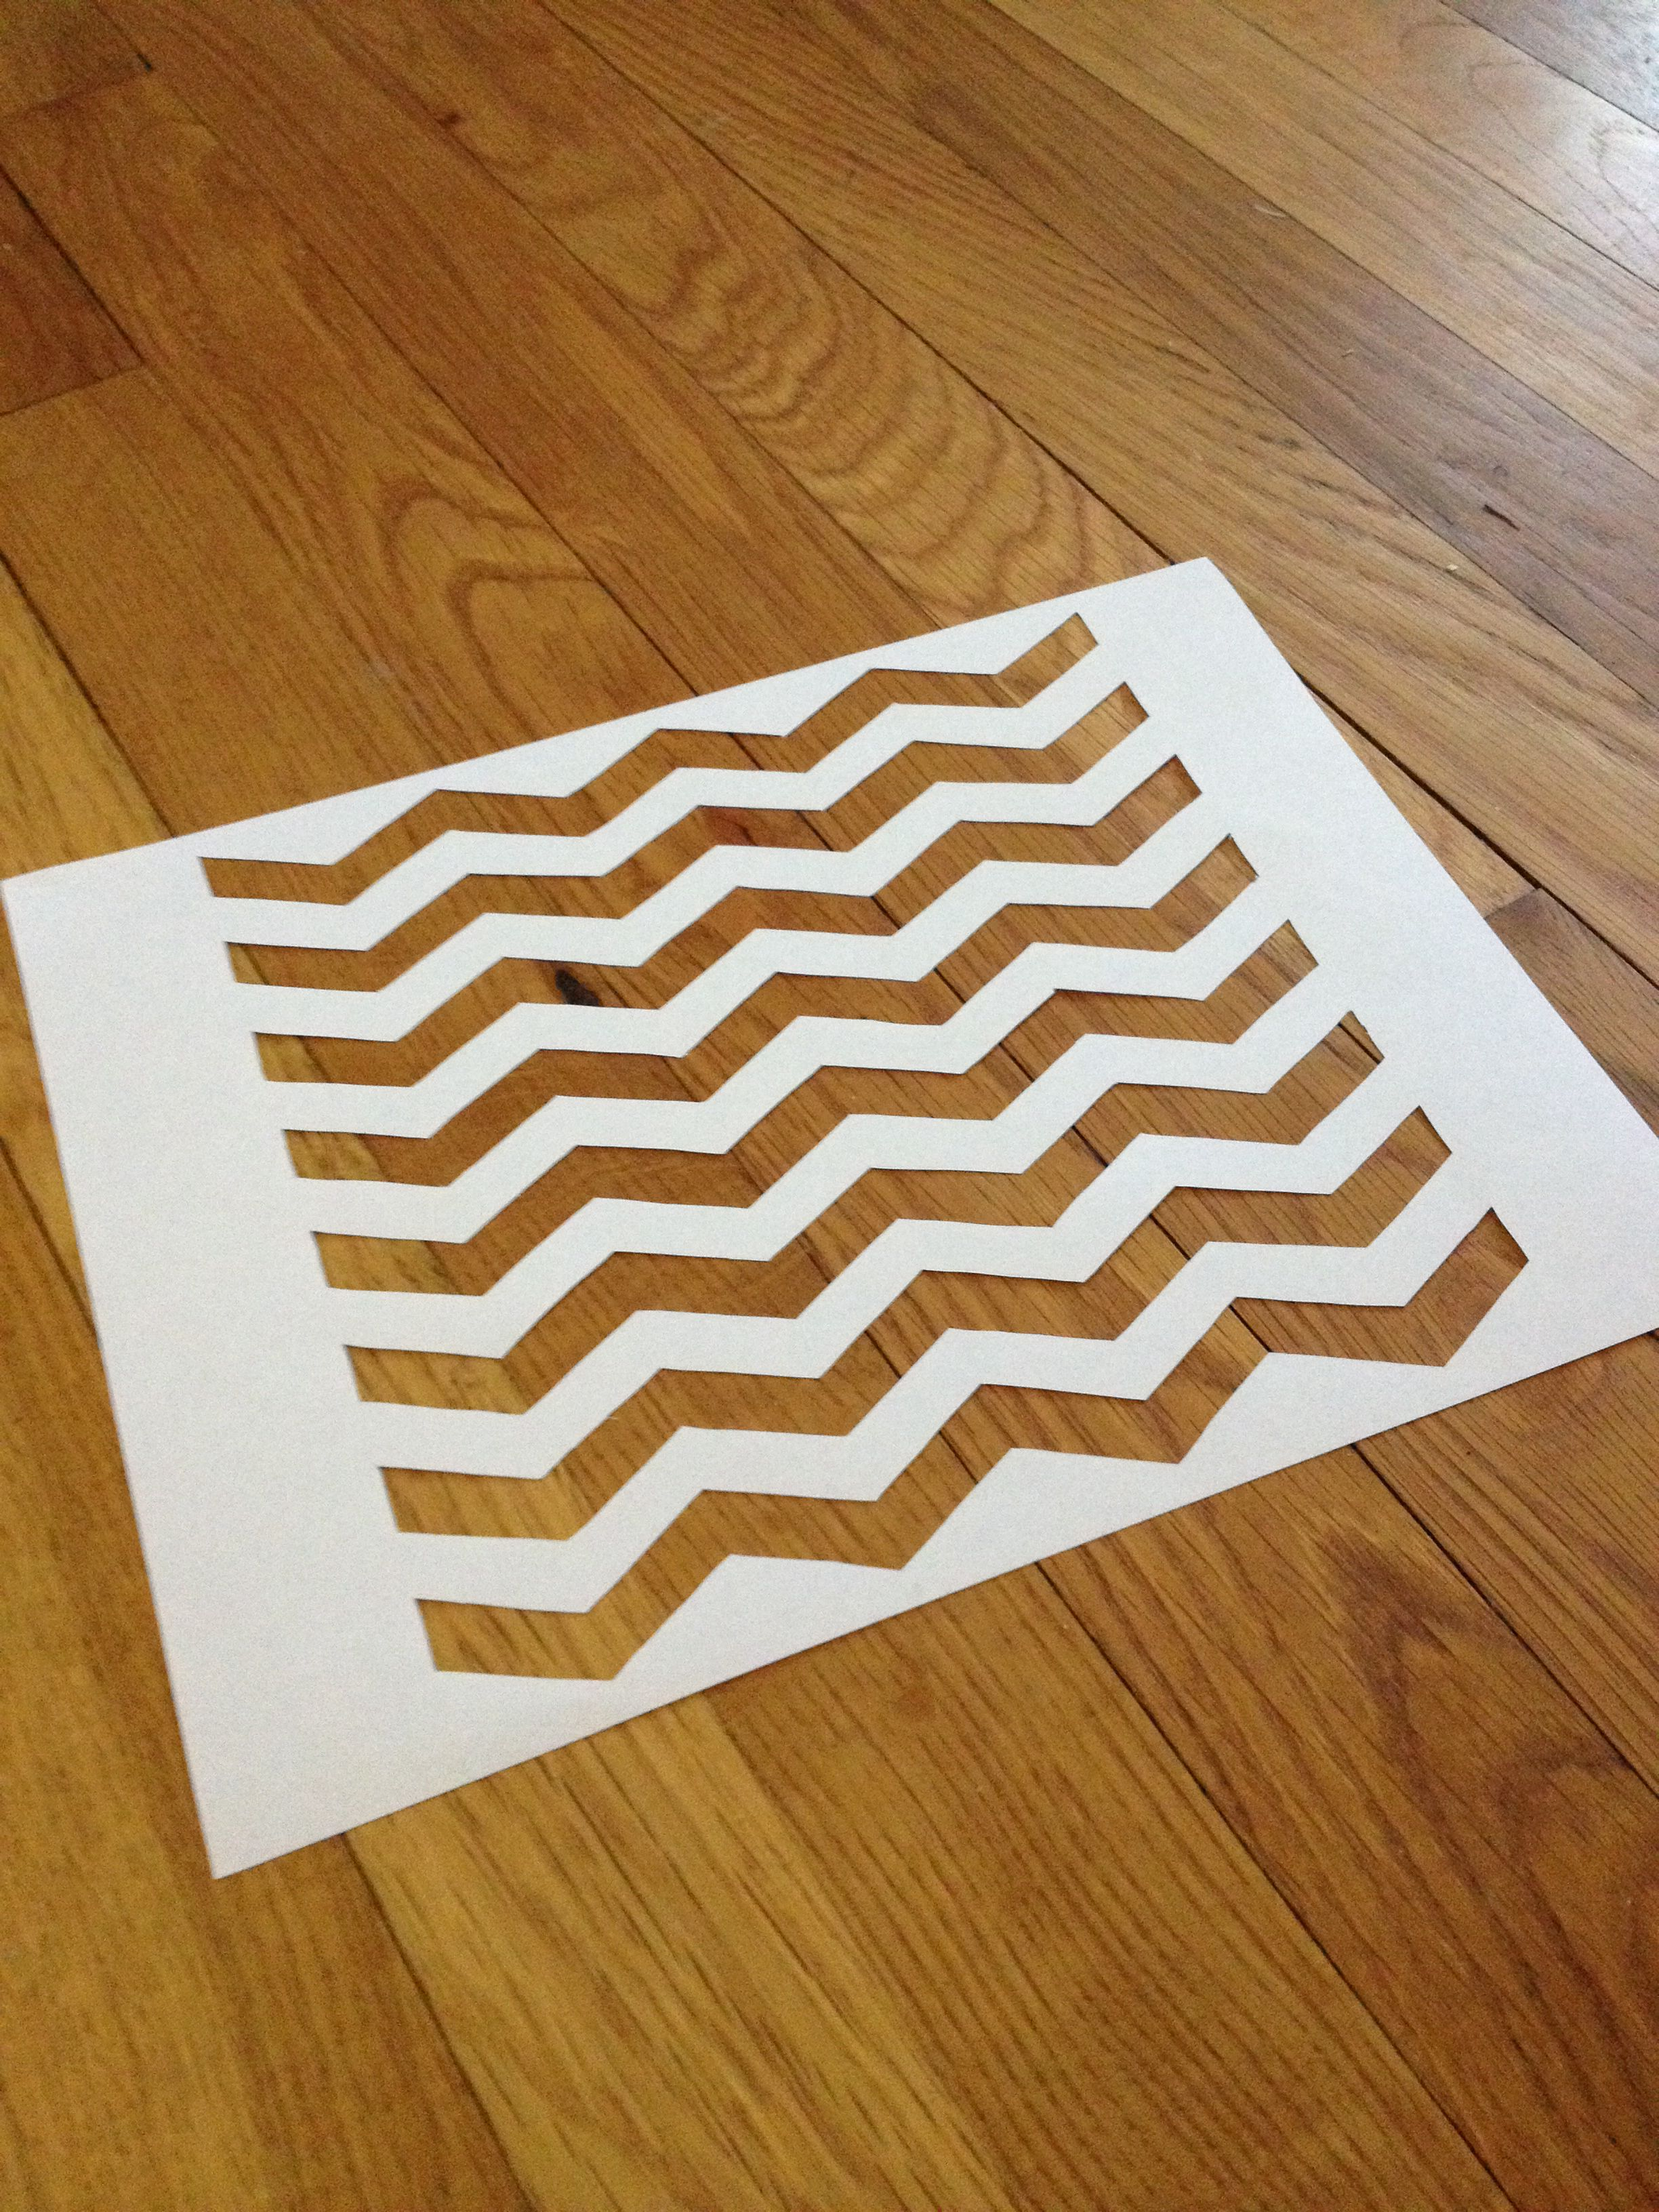 8x8 Chevron Pattern Template Lines Are Half An Inch Wide Made With